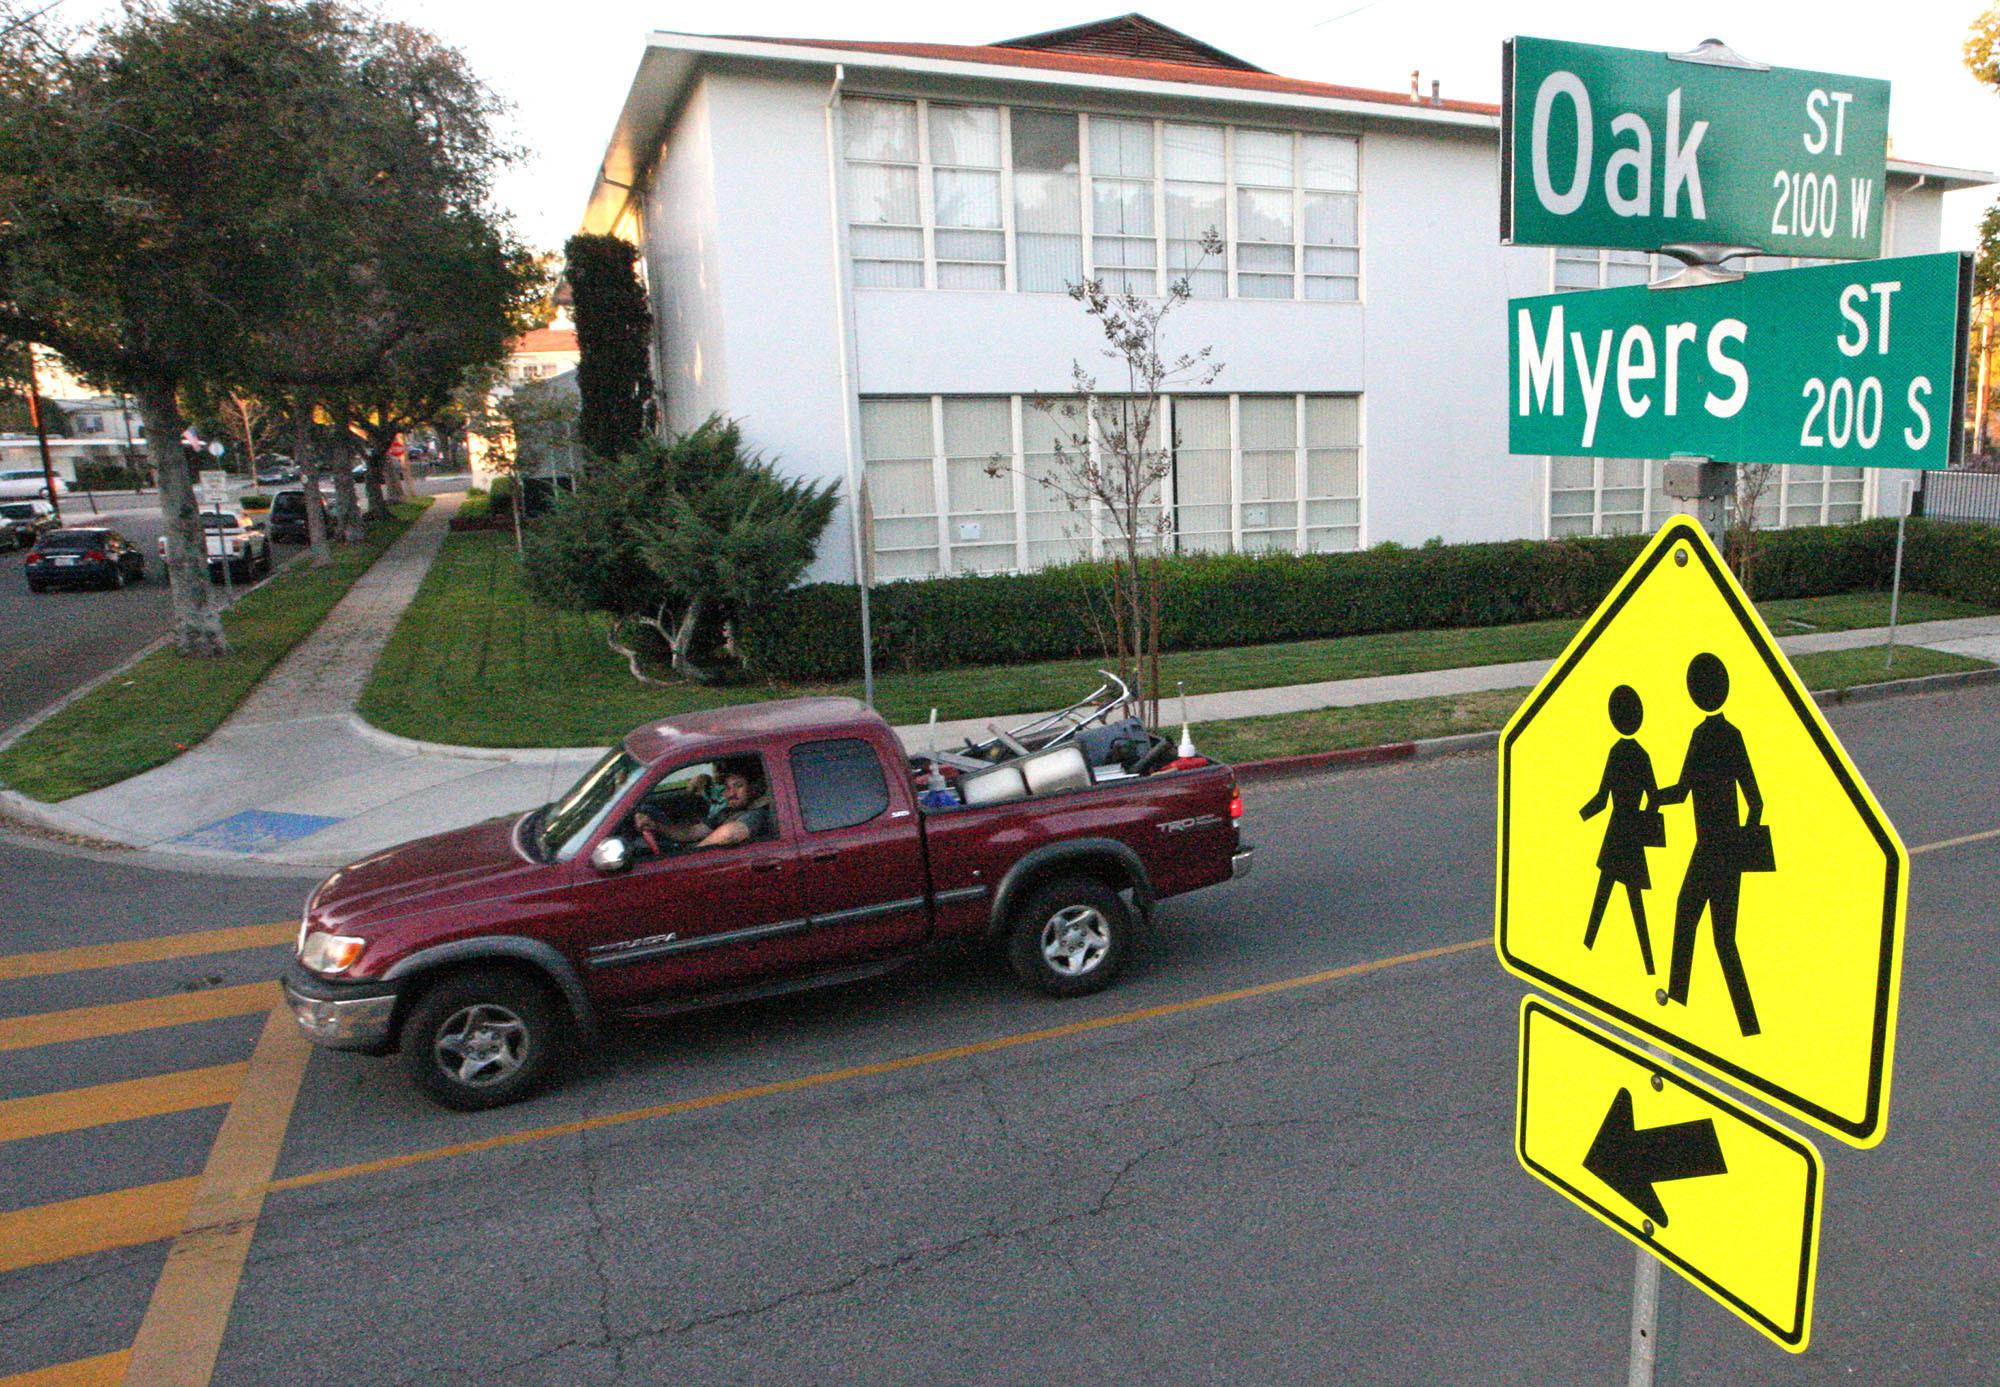 The Burbank City Council on Tuesday approved a four-way stop sign at Oak and Myers Streets near St. Finbar school, where there is currently only a two-way stop sign, at the request of parents of children who attend the school.